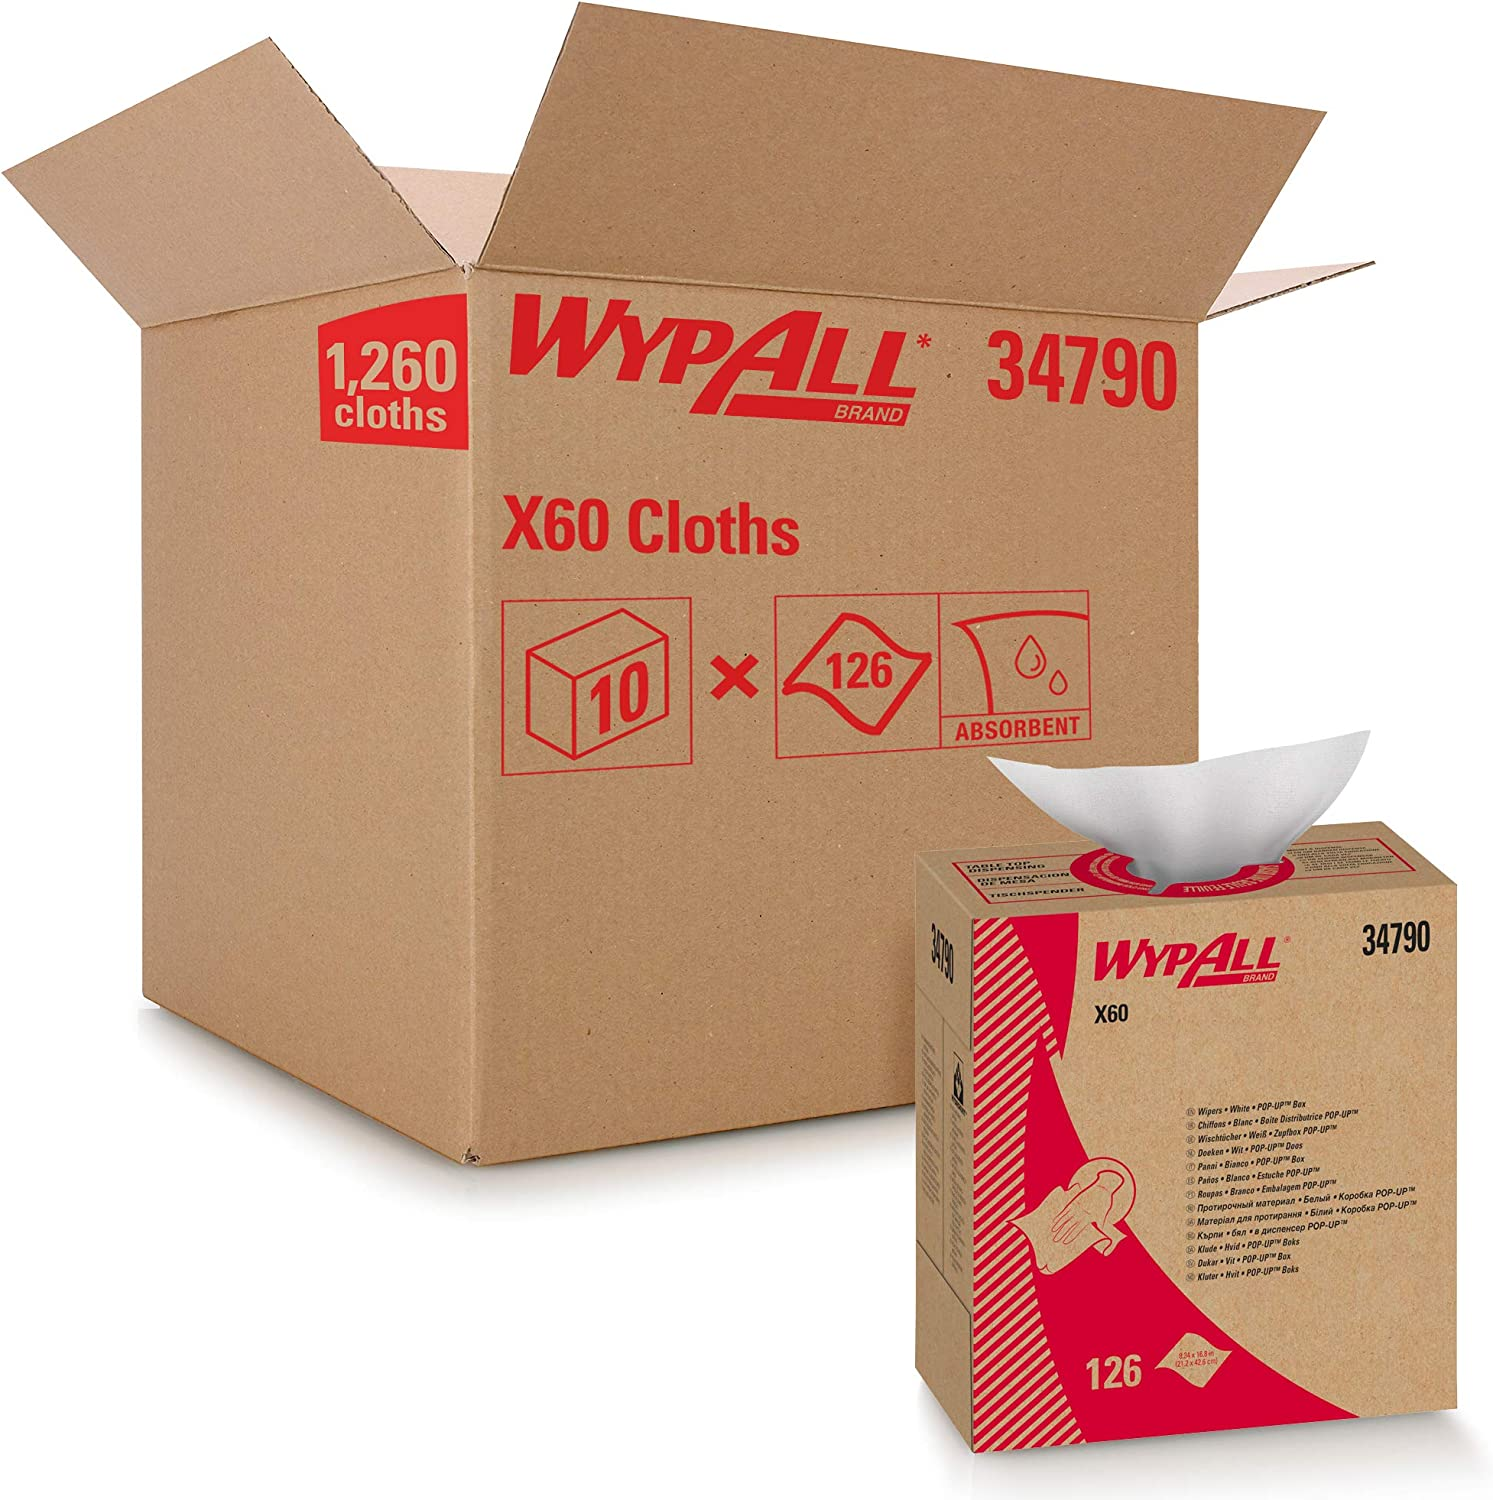 Wypall 34790CT X60 Cloths Max 89% OFF POP-UP Box White 9 8 1 7 16 12 x overseas